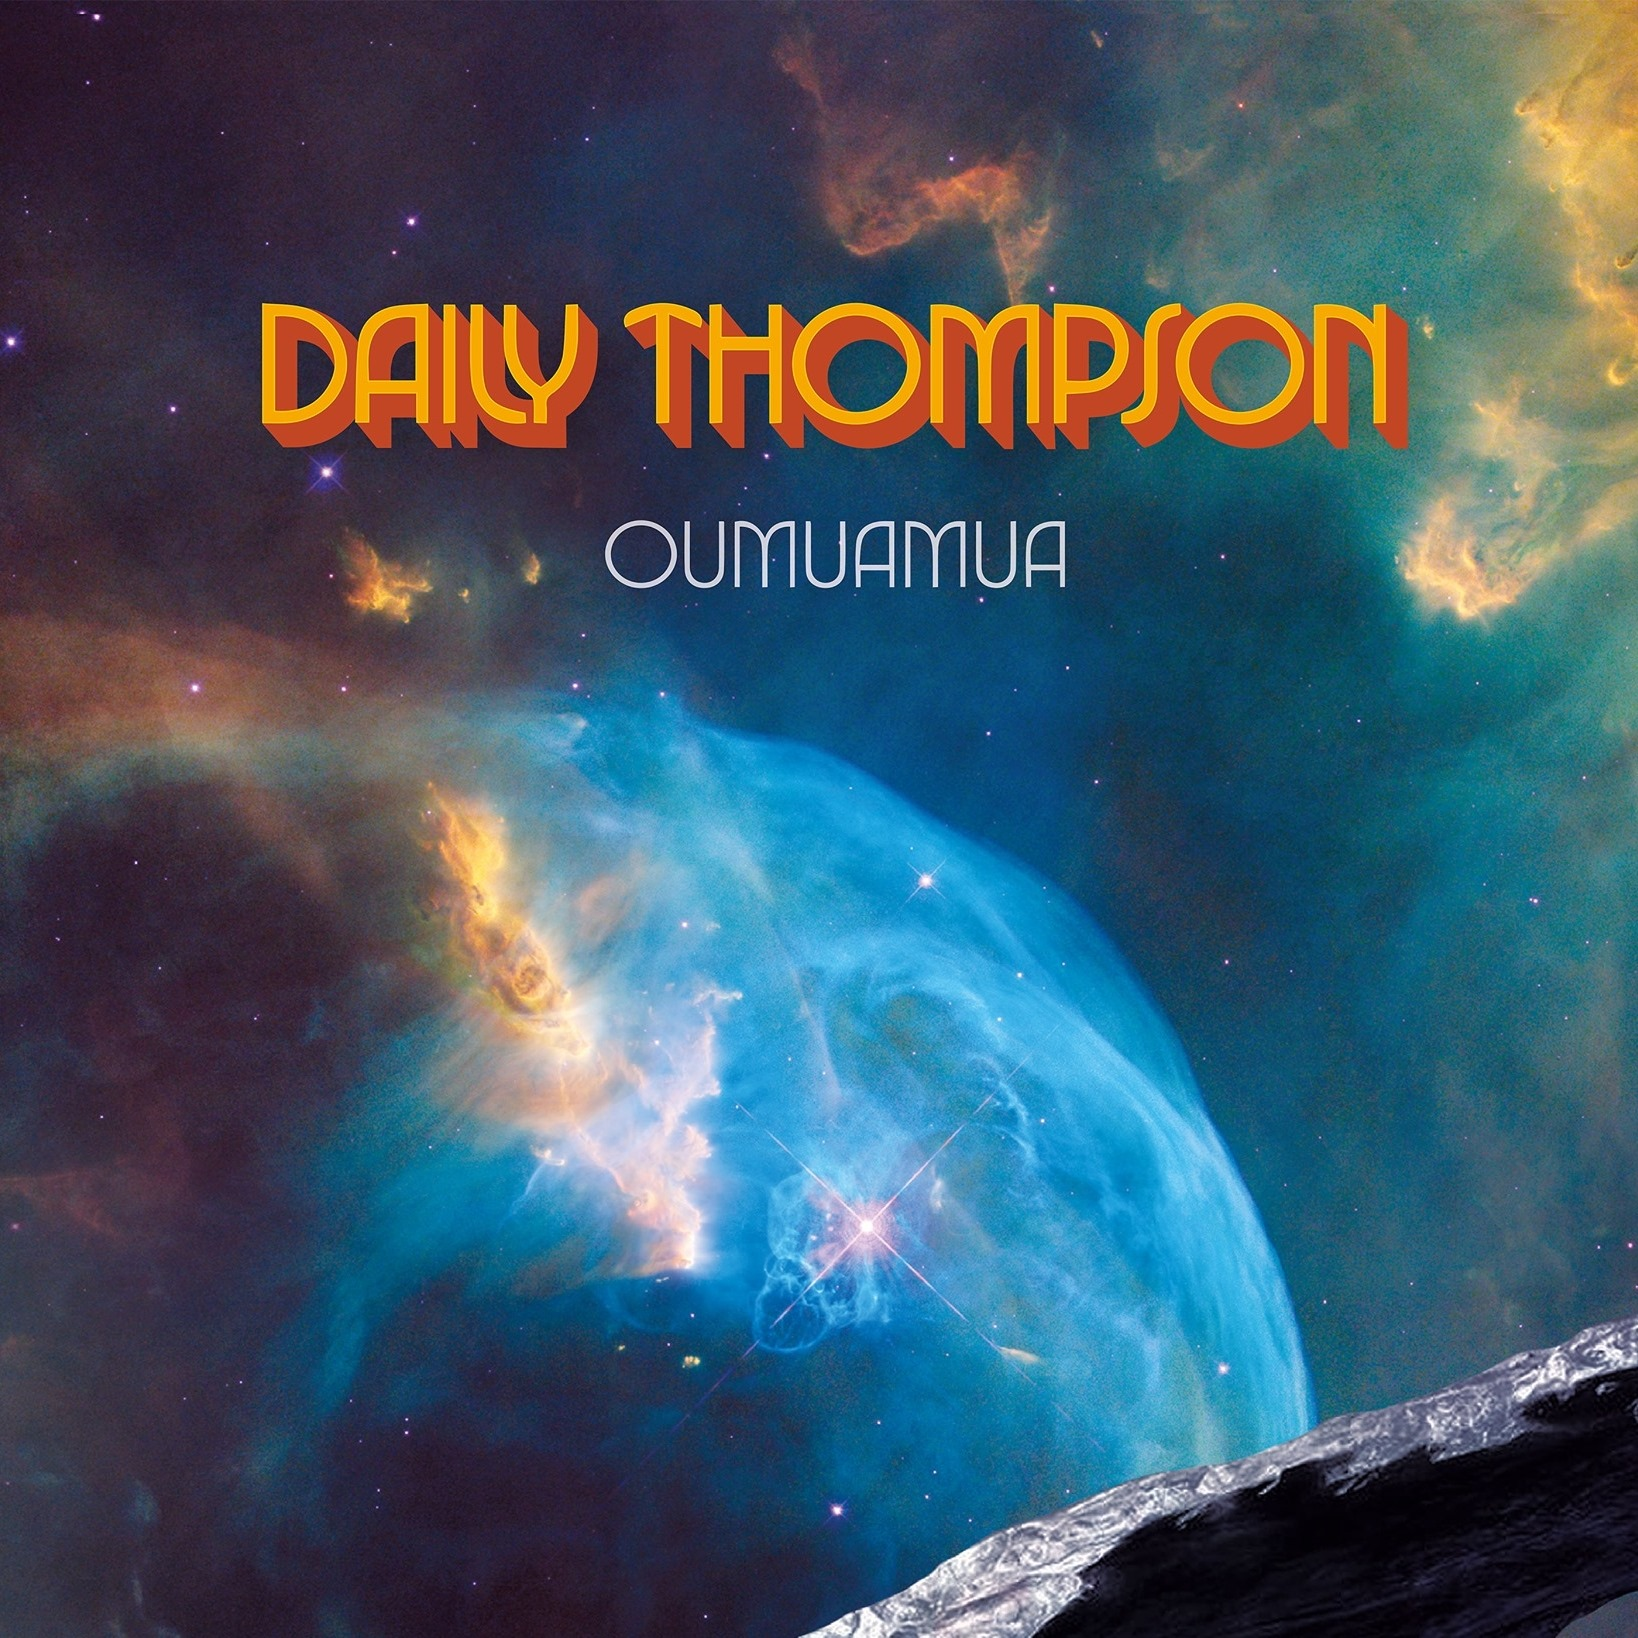 daily thompson oumuamua